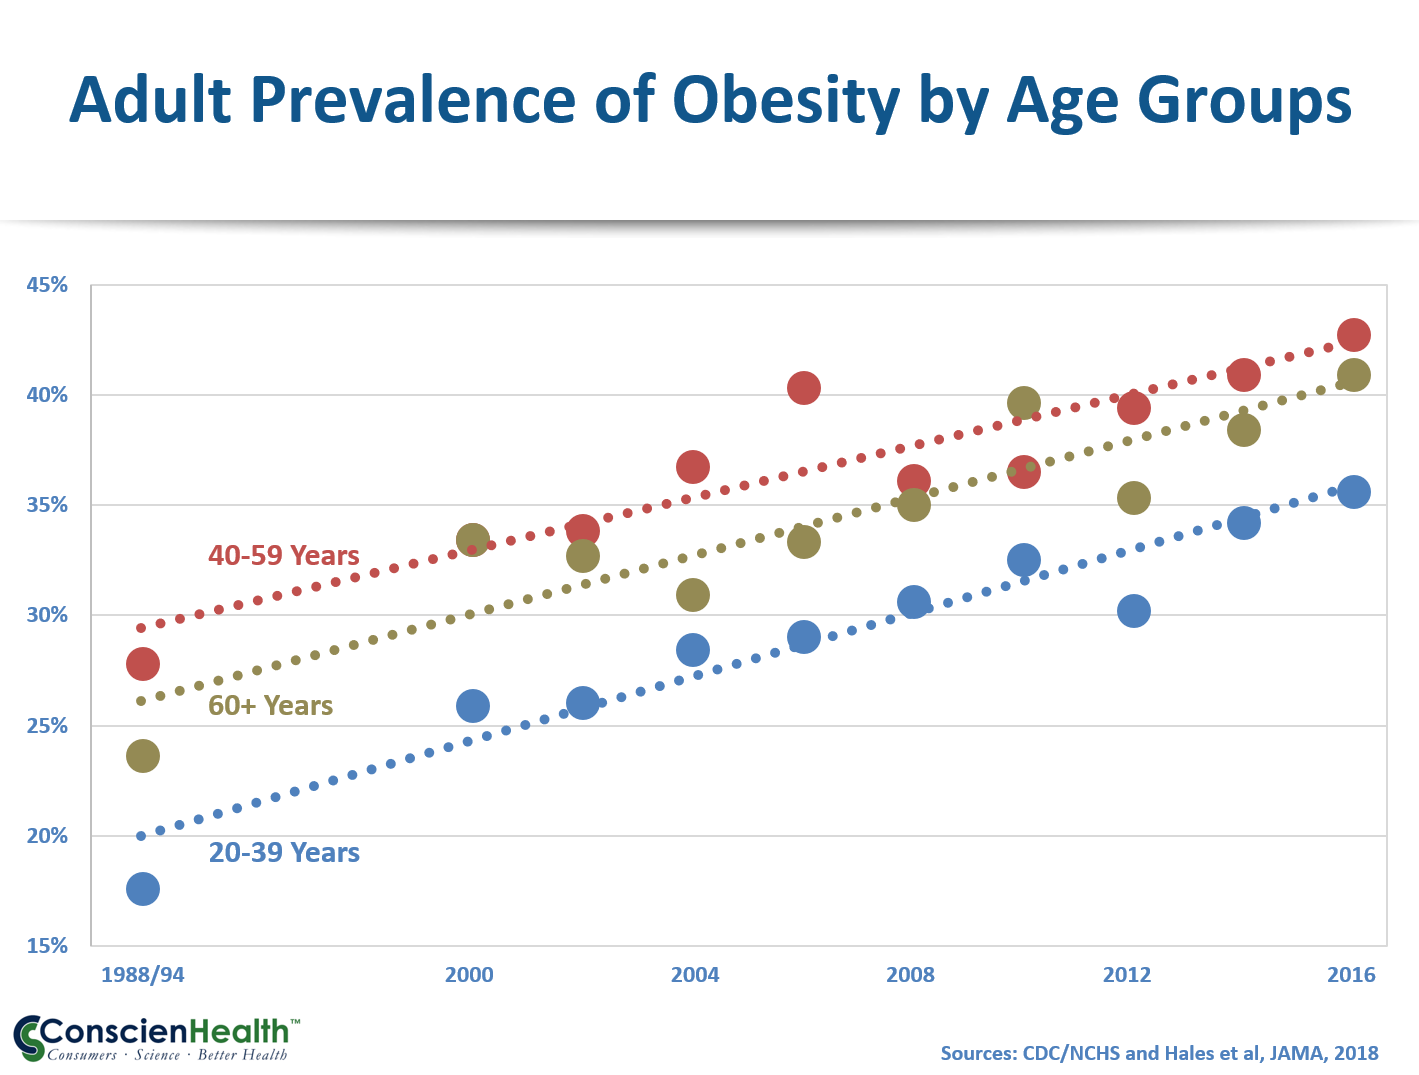 Adult Prevalence of Obesity by Age Groups